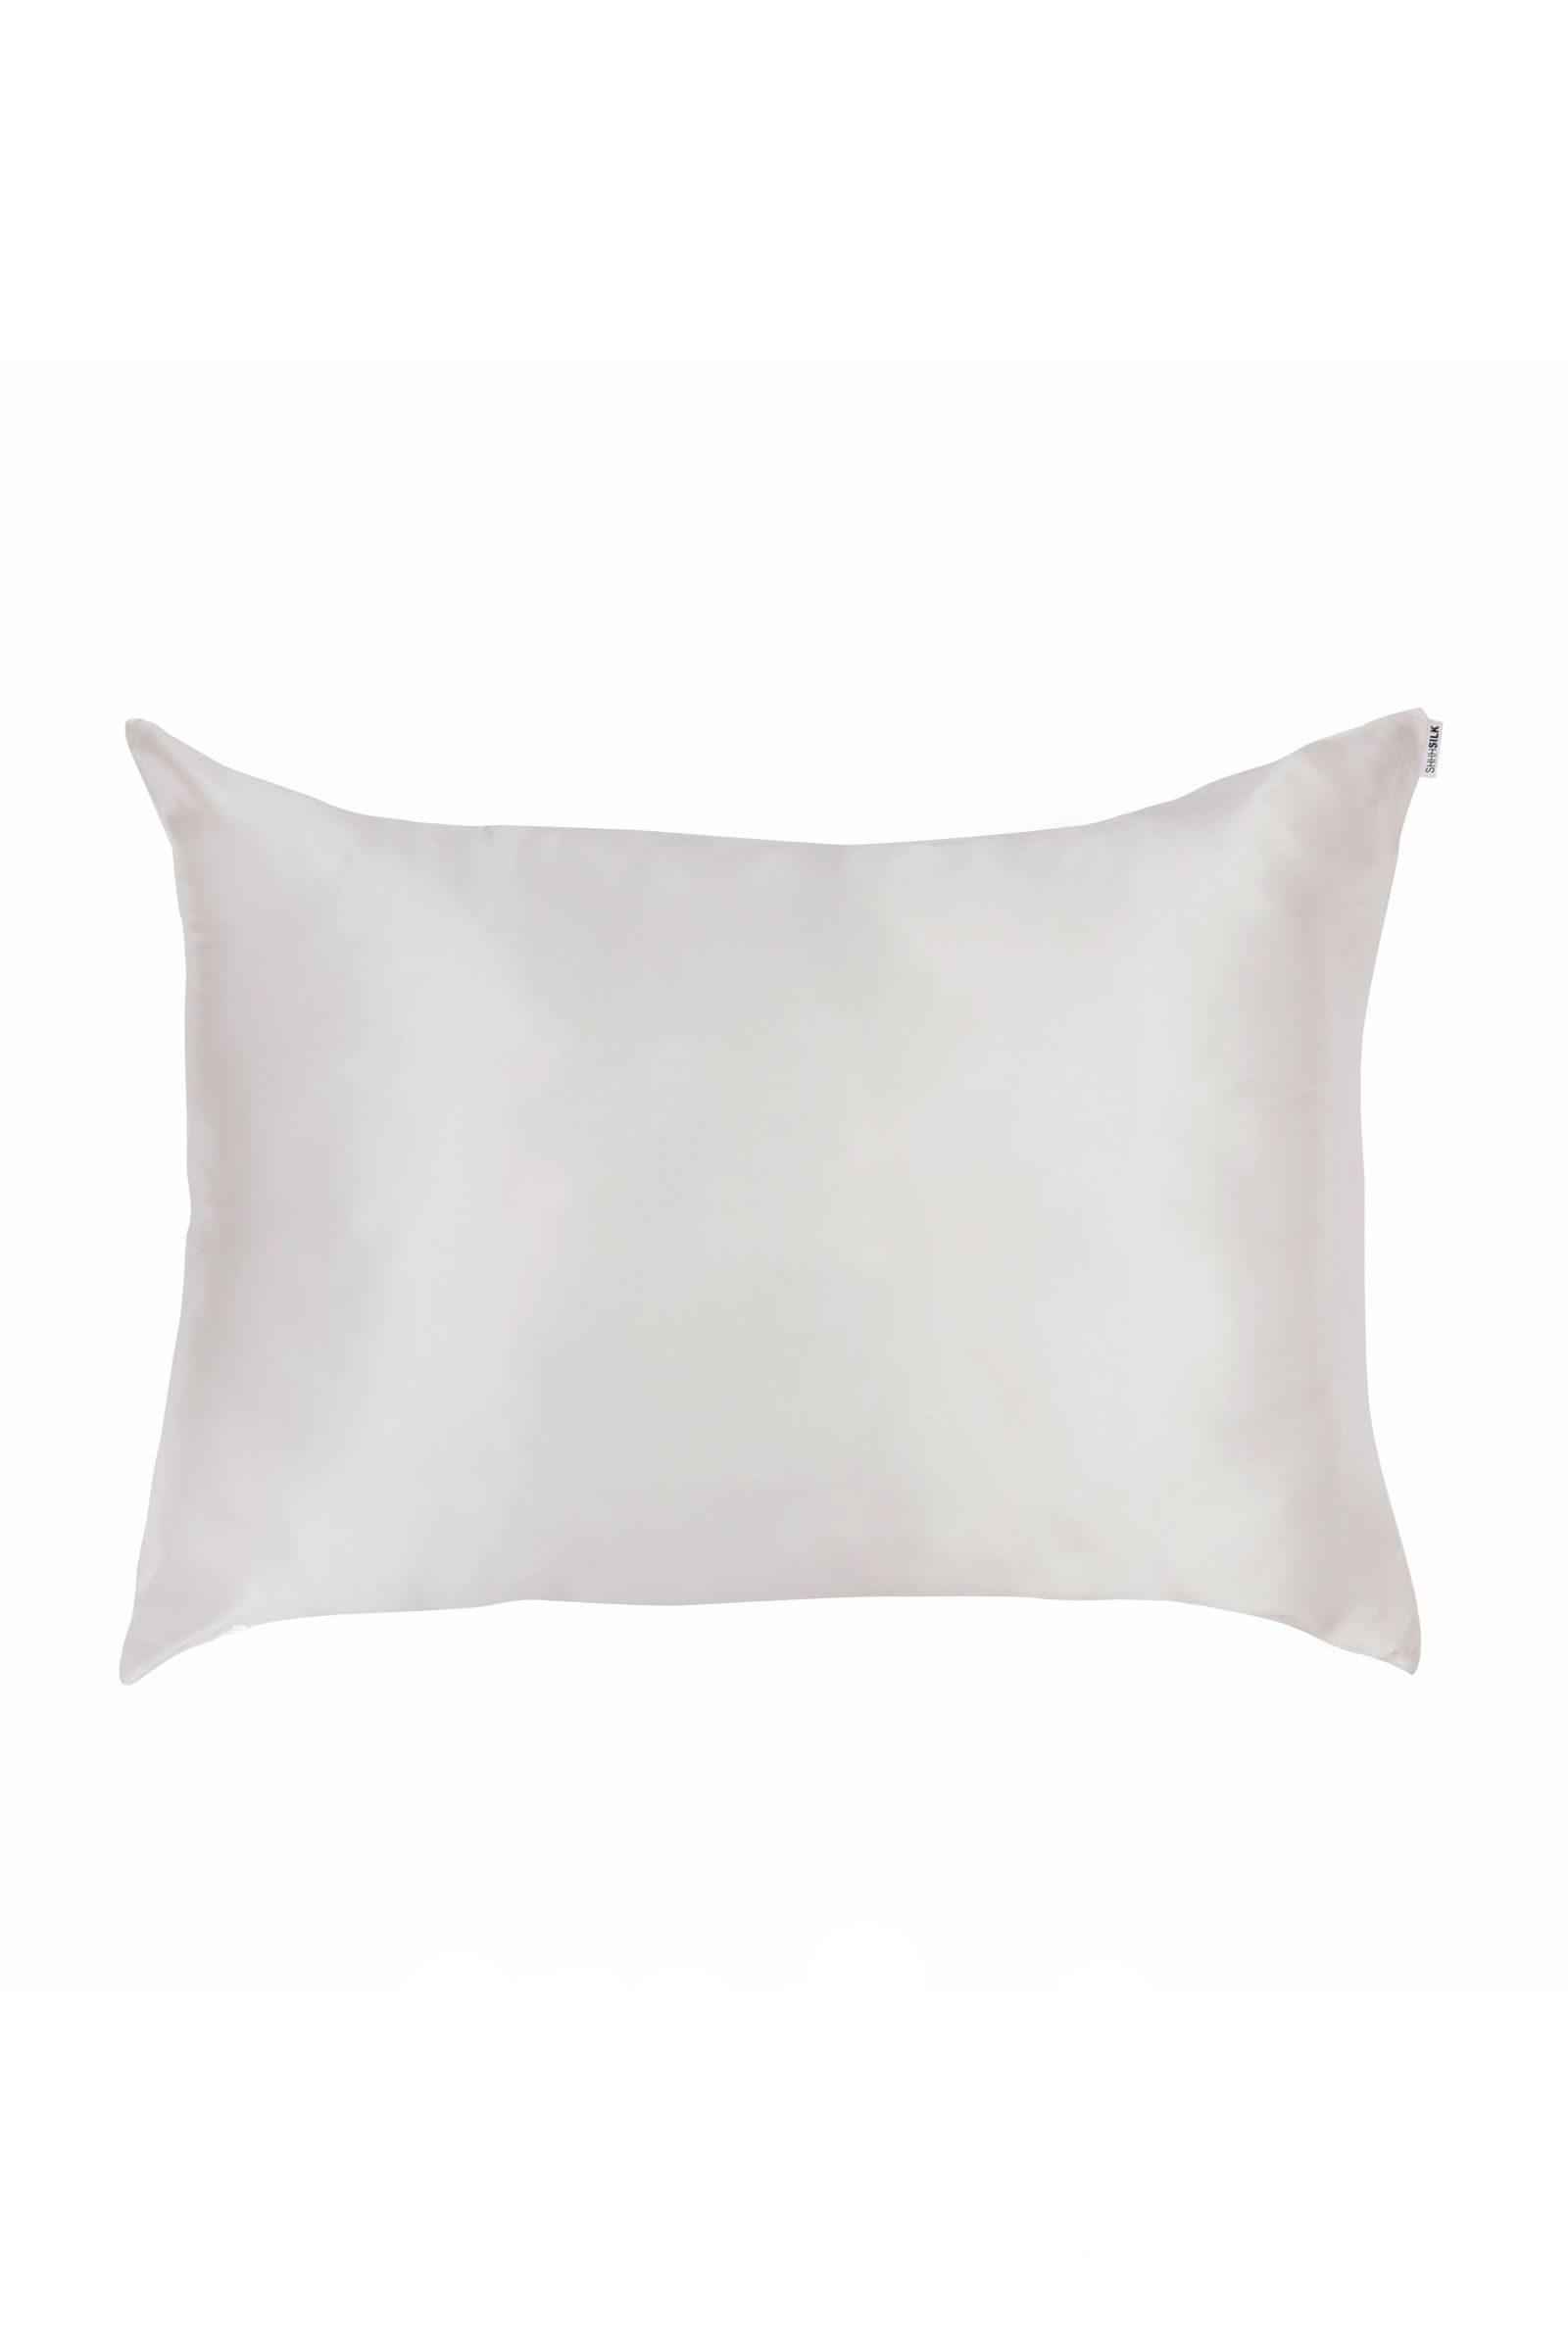 tre company synthetic silk fine pillows boutique pill bedding products pillow